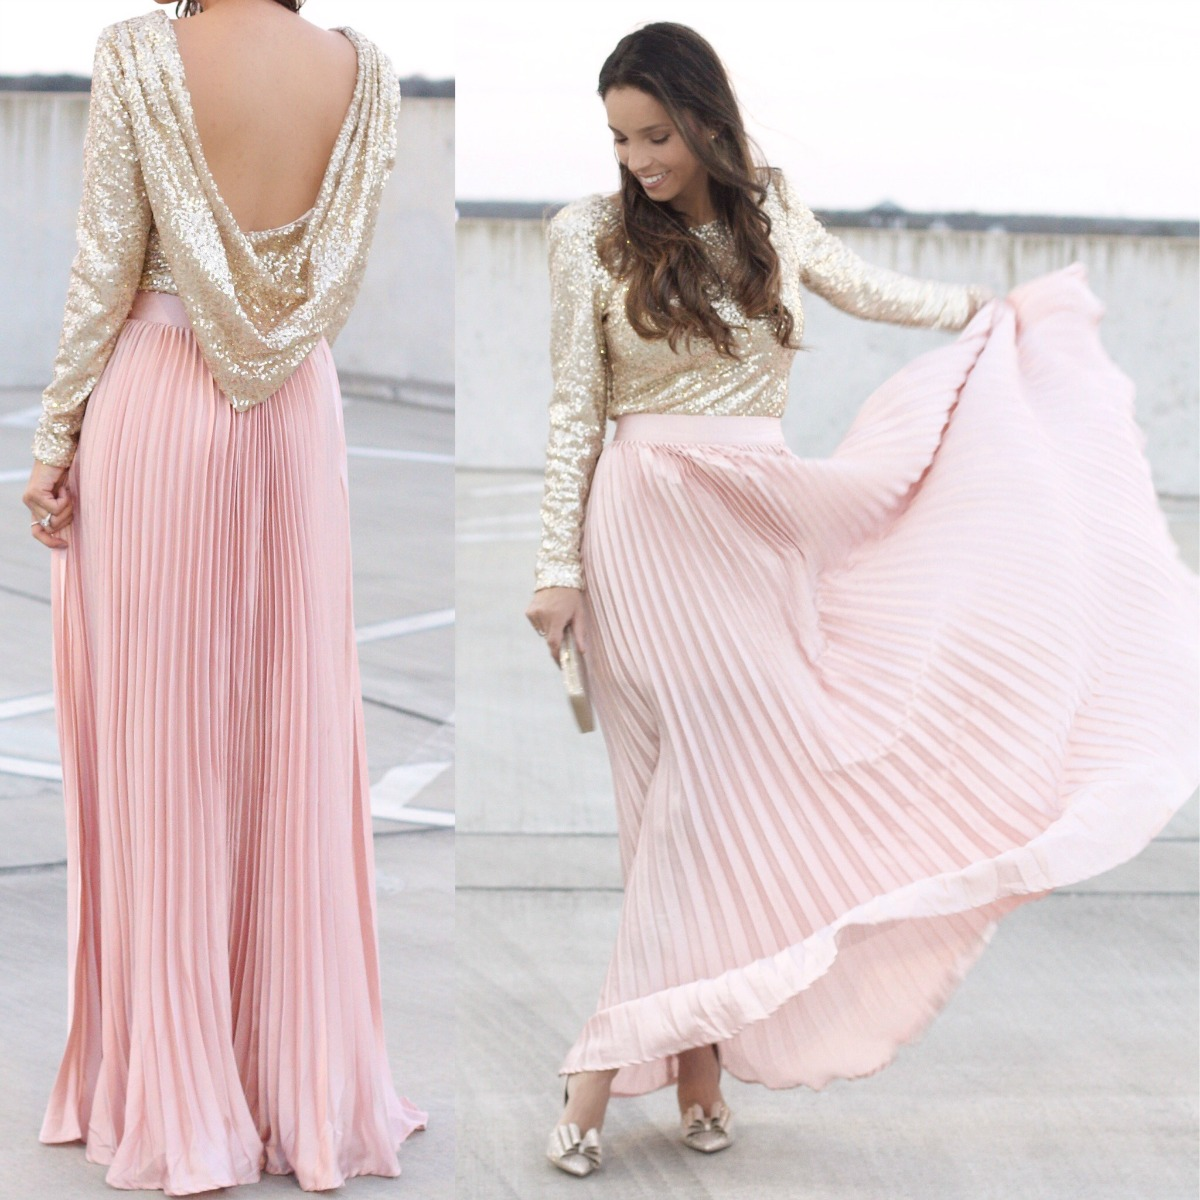 metallic blush skirt